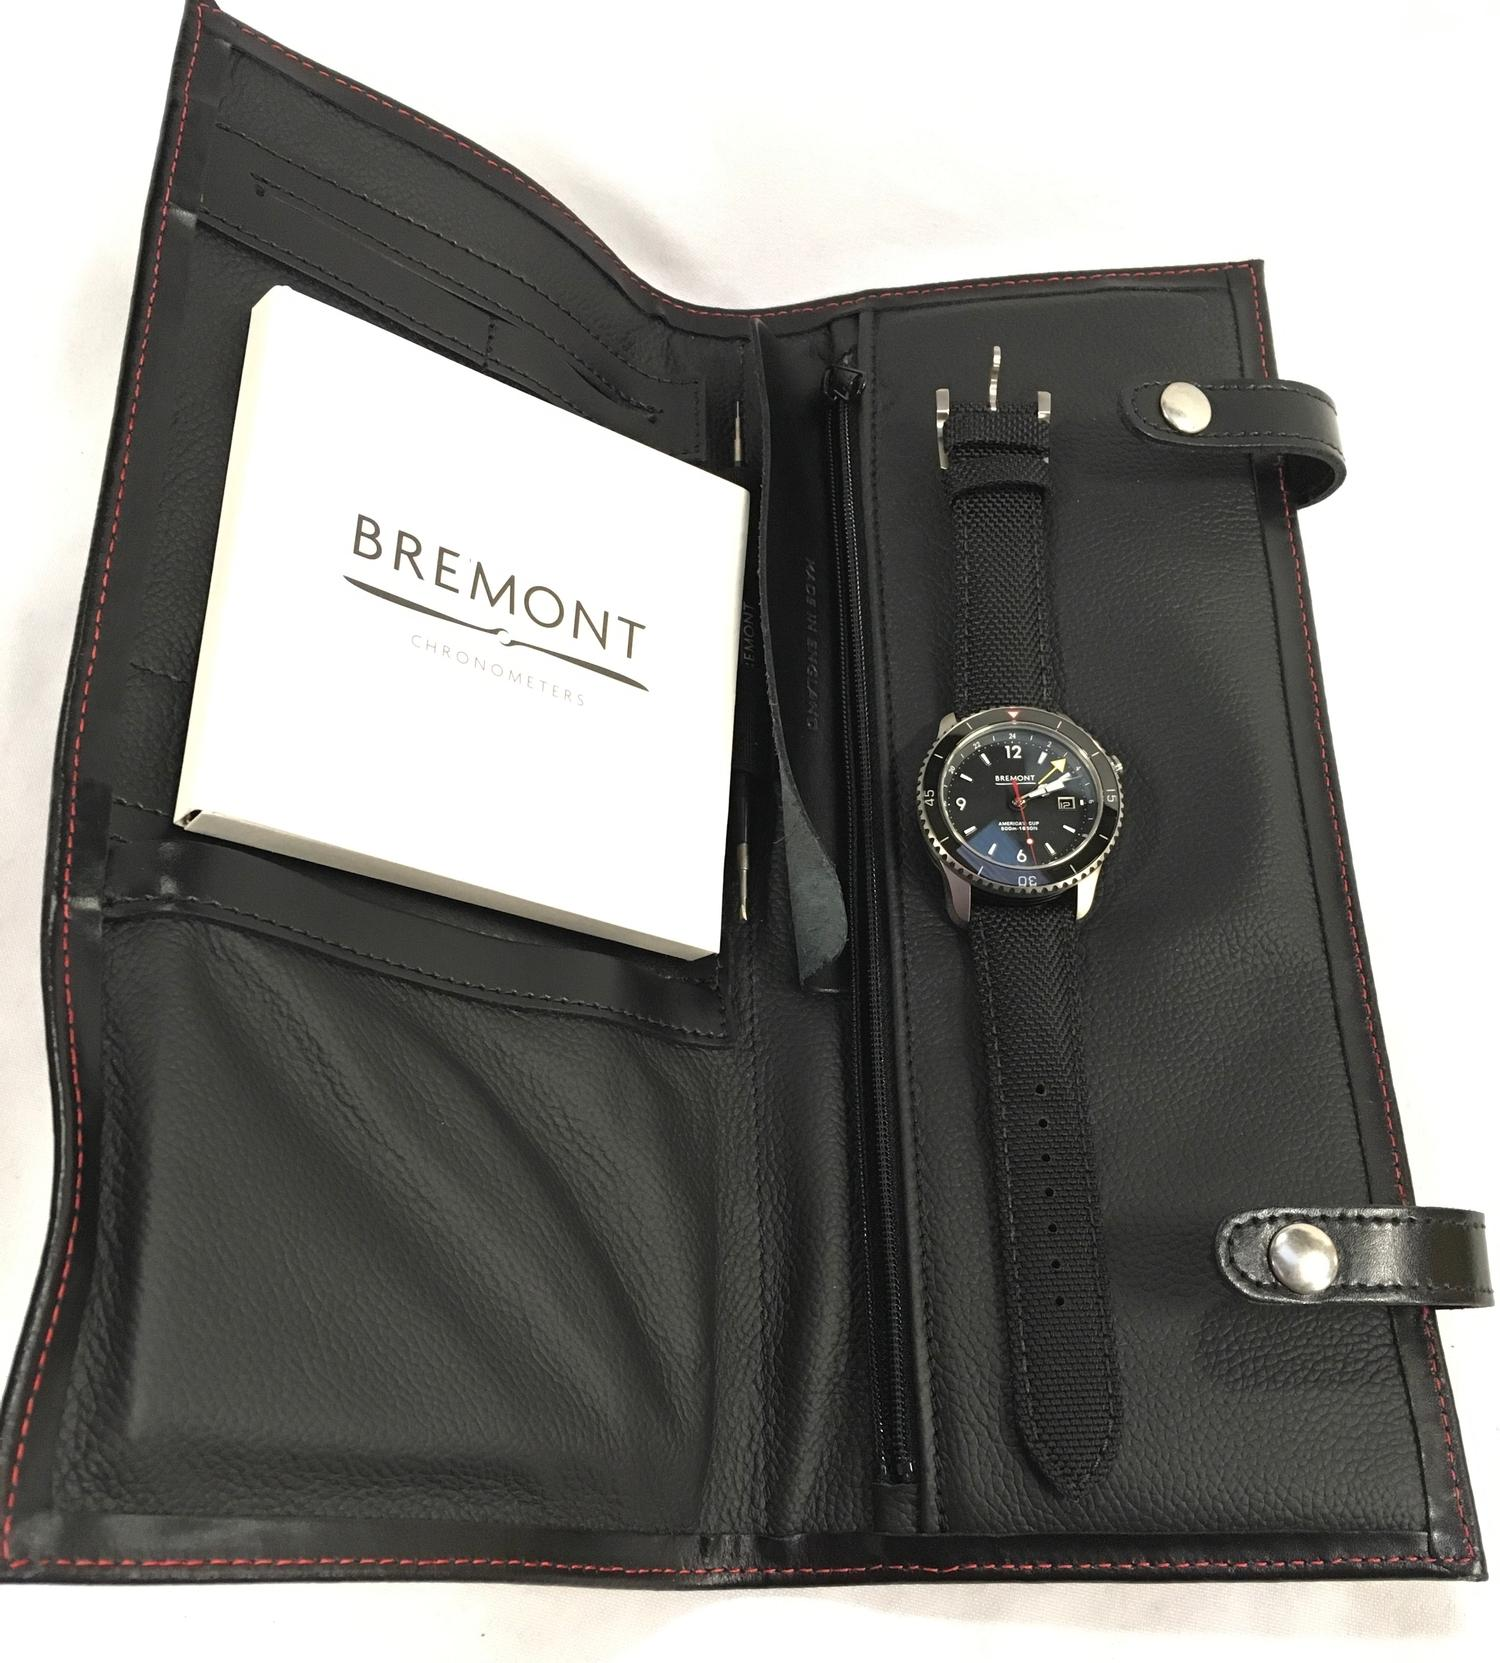 Stainless Steel Bremont America's Cup Watch, as new and complete, Limited Edition No 007/535. - Image 2 of 10